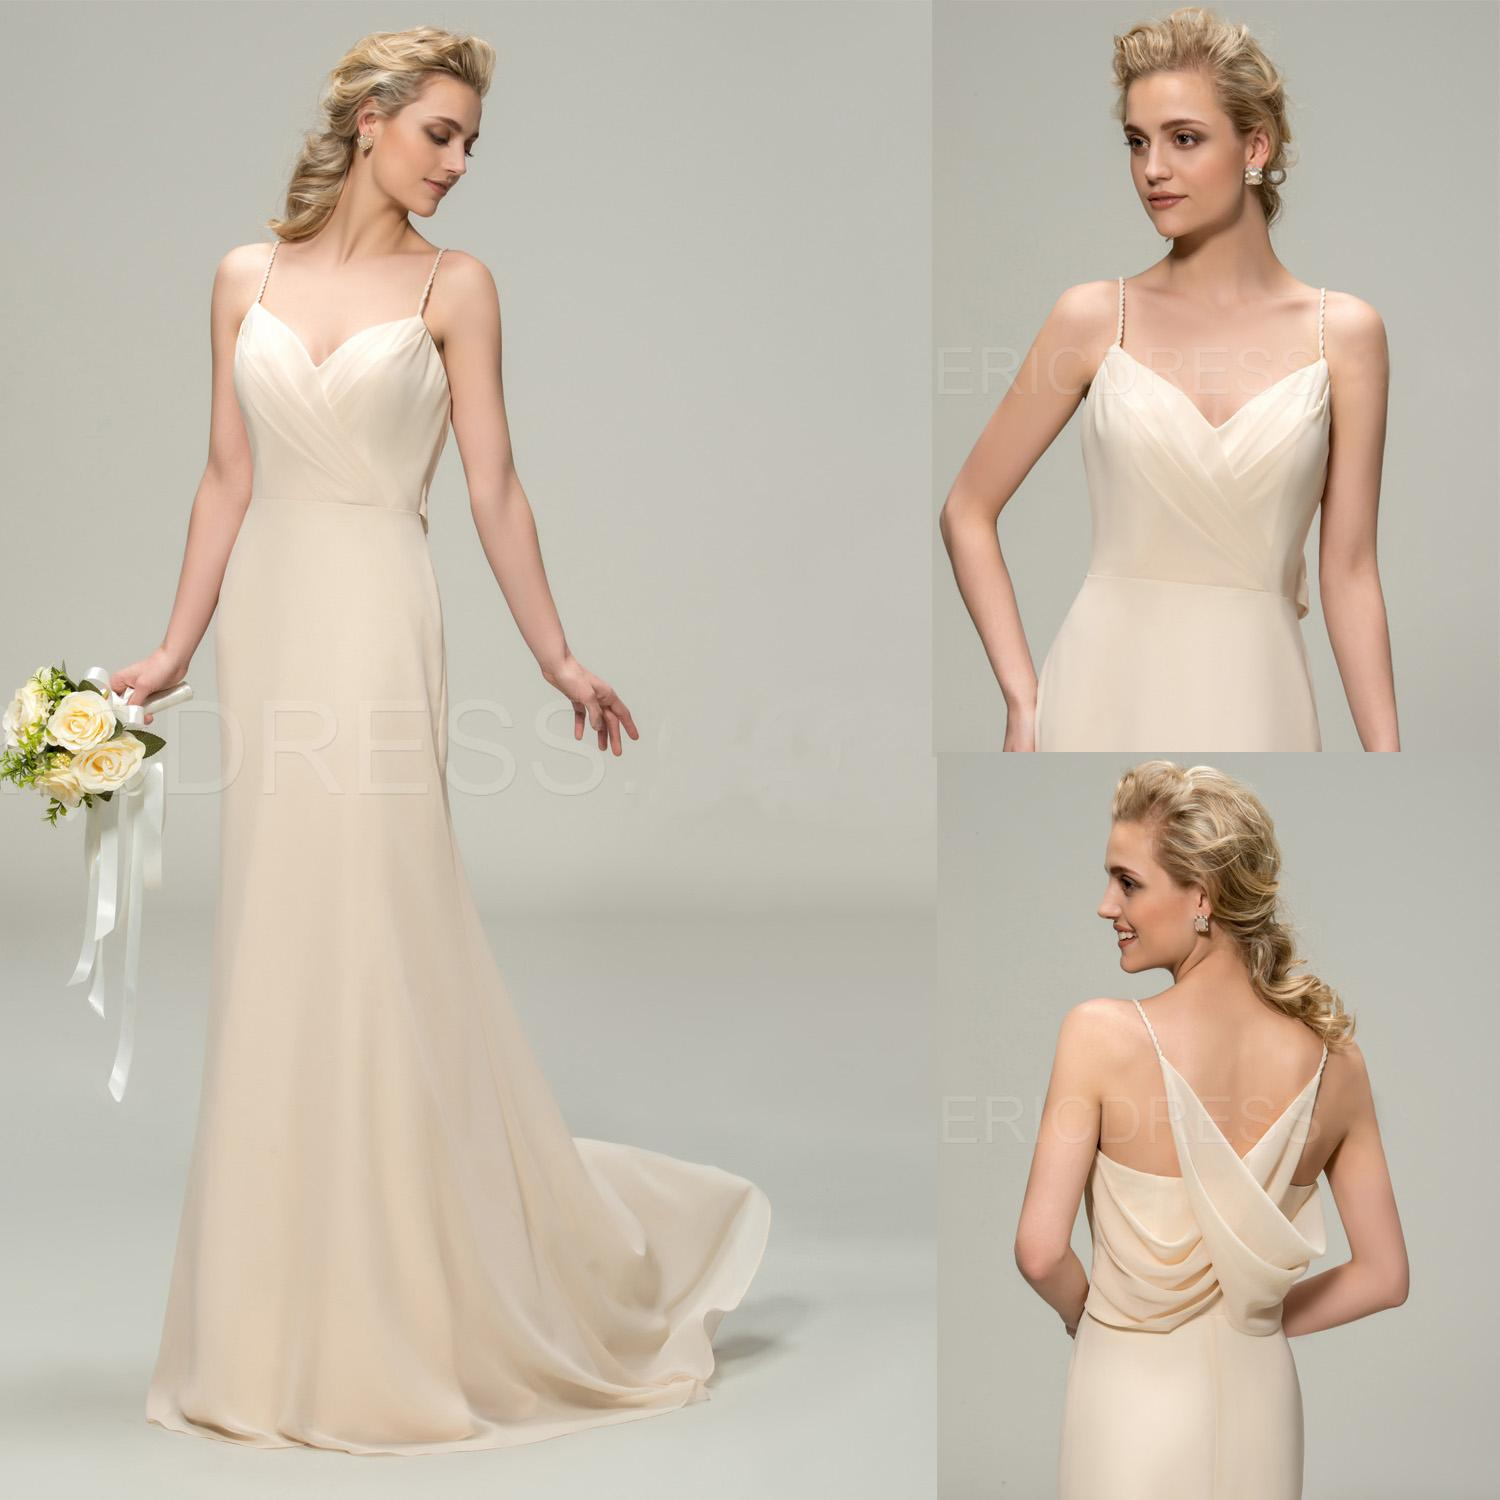 Champagne bridesmaid dresses 2015 long pleated spaghetti straps see larger image ombrellifo Images